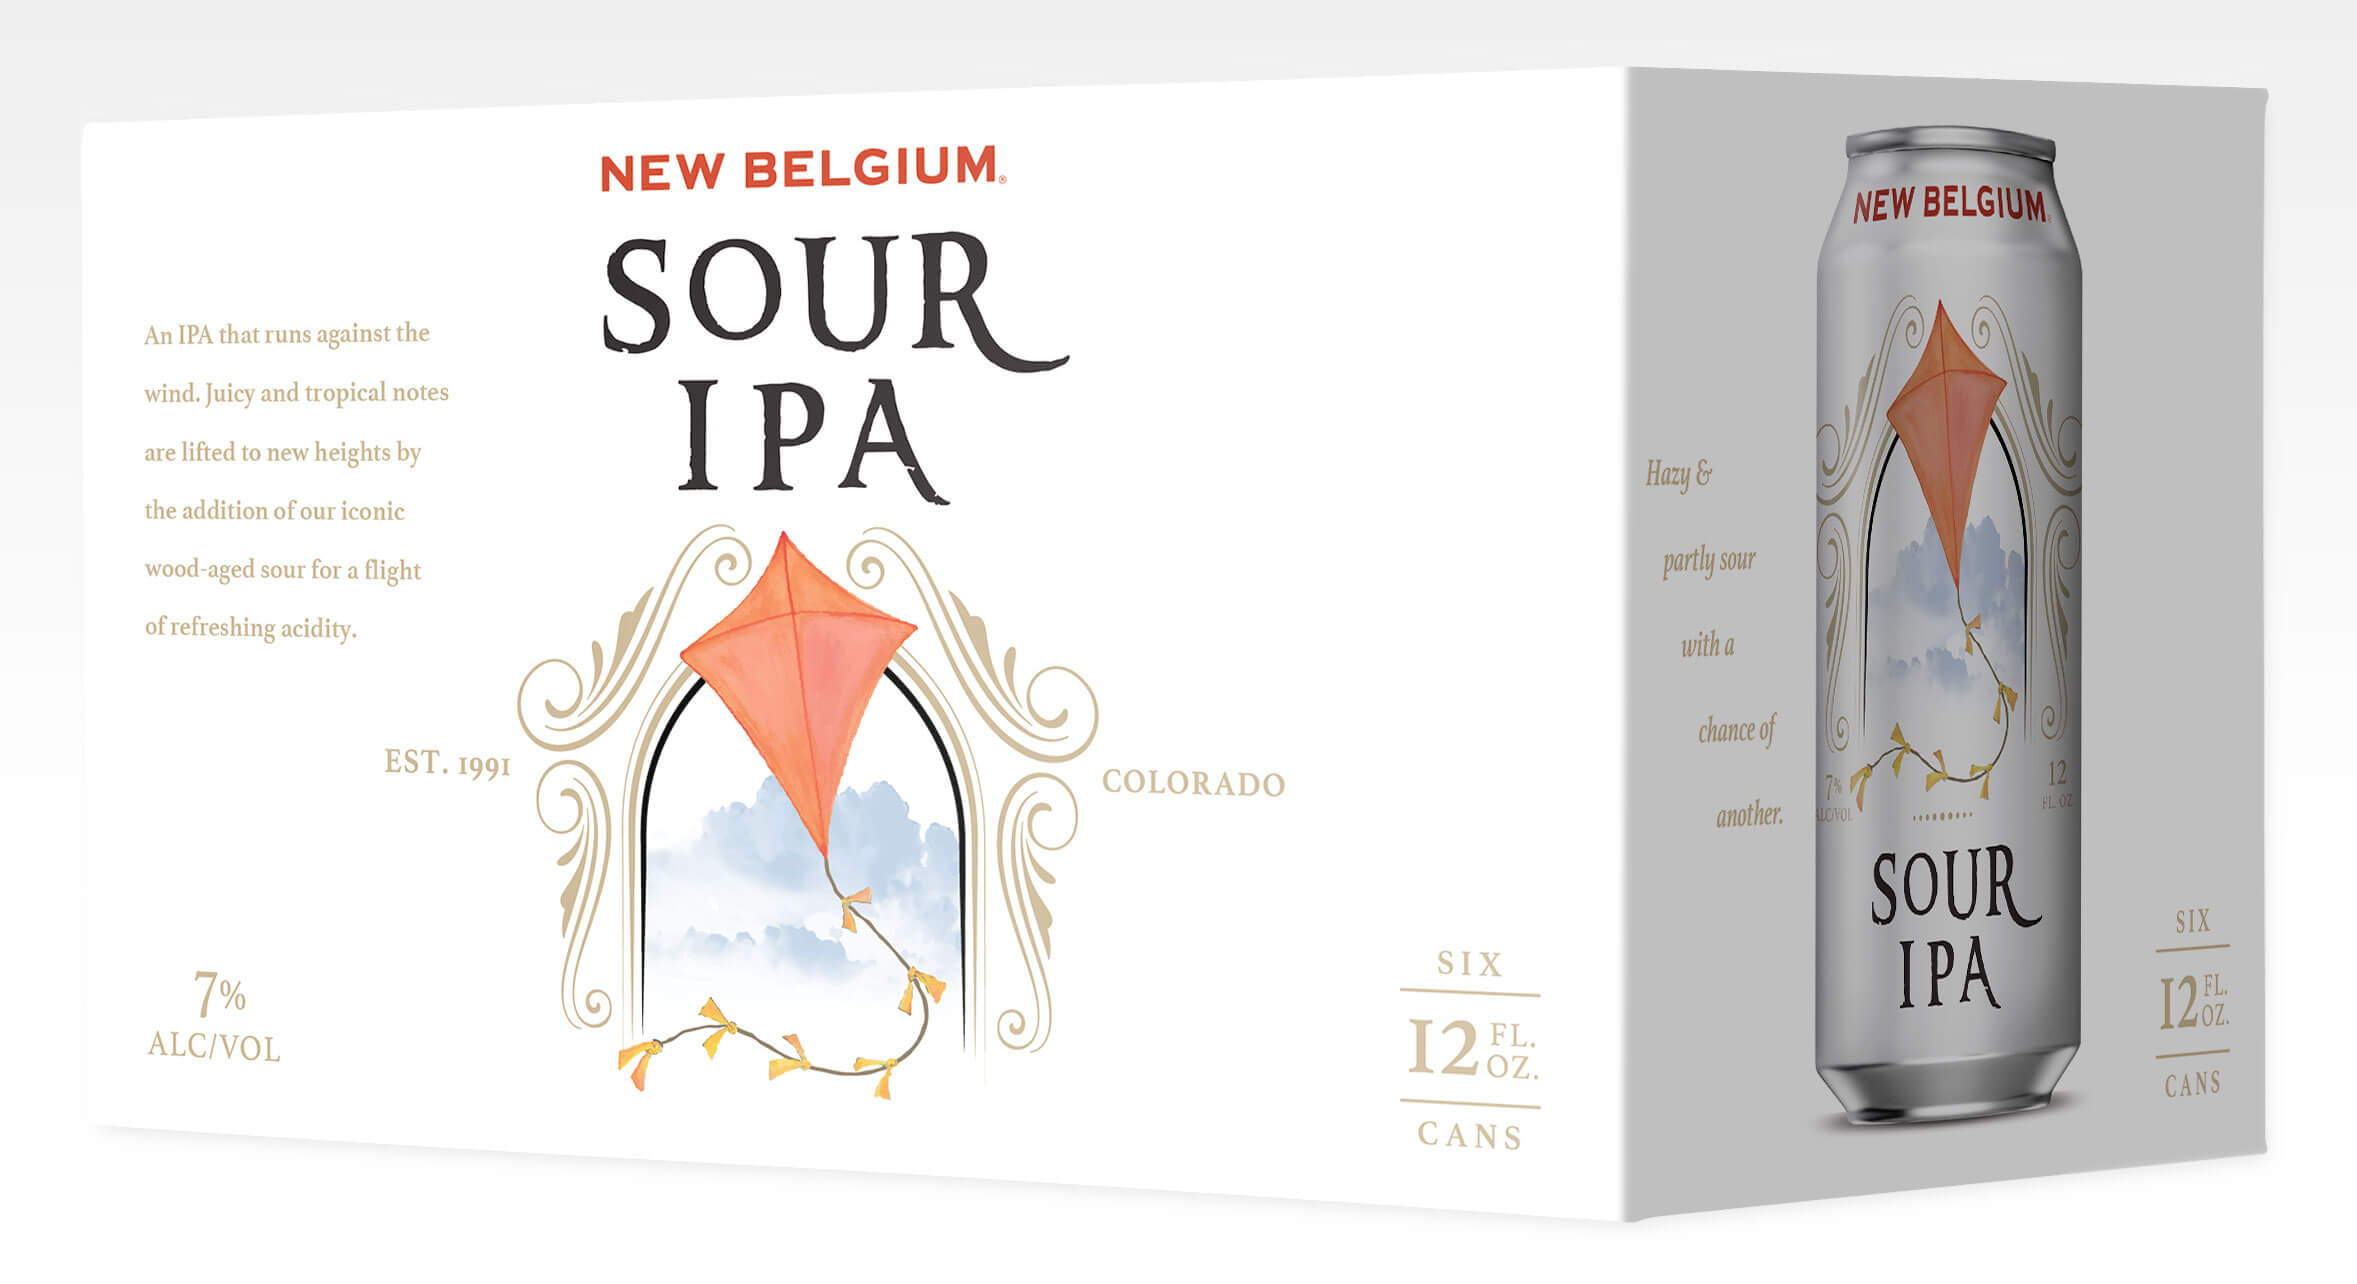 Packaging design for six packs of 12 oz. cans of the Sour IPA by New Belgium Brewing Company